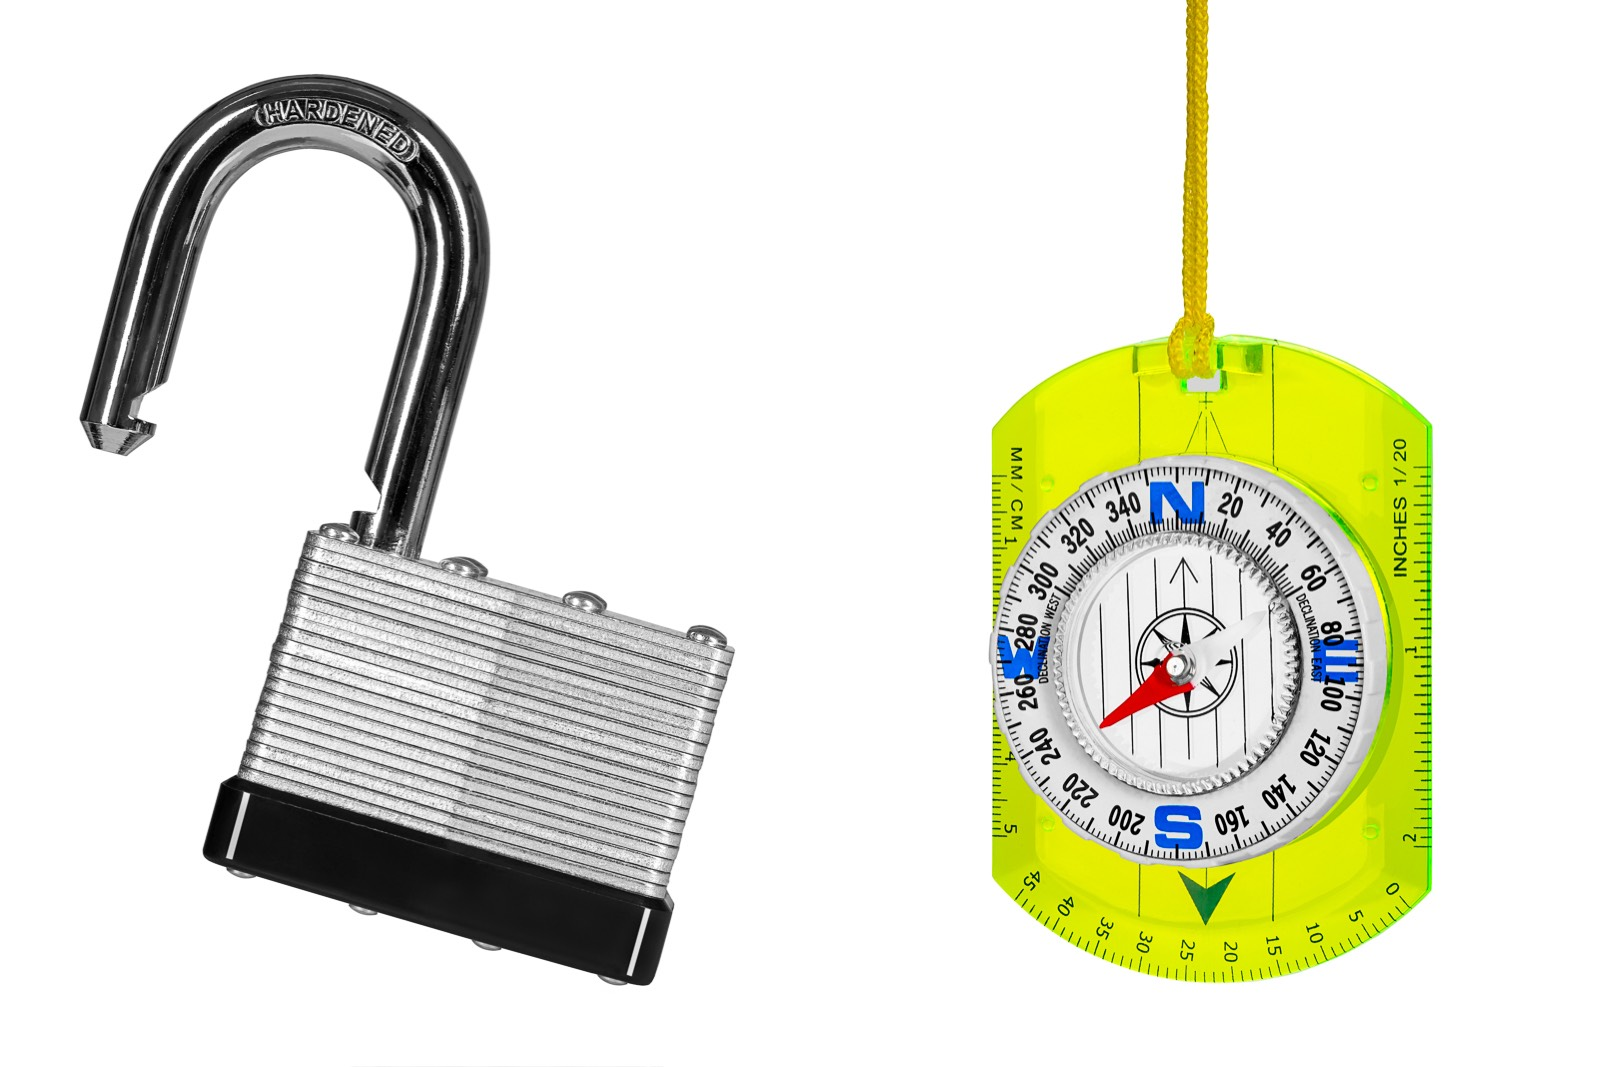 single open steel padlock and plastic compass on a white background for retail marketing